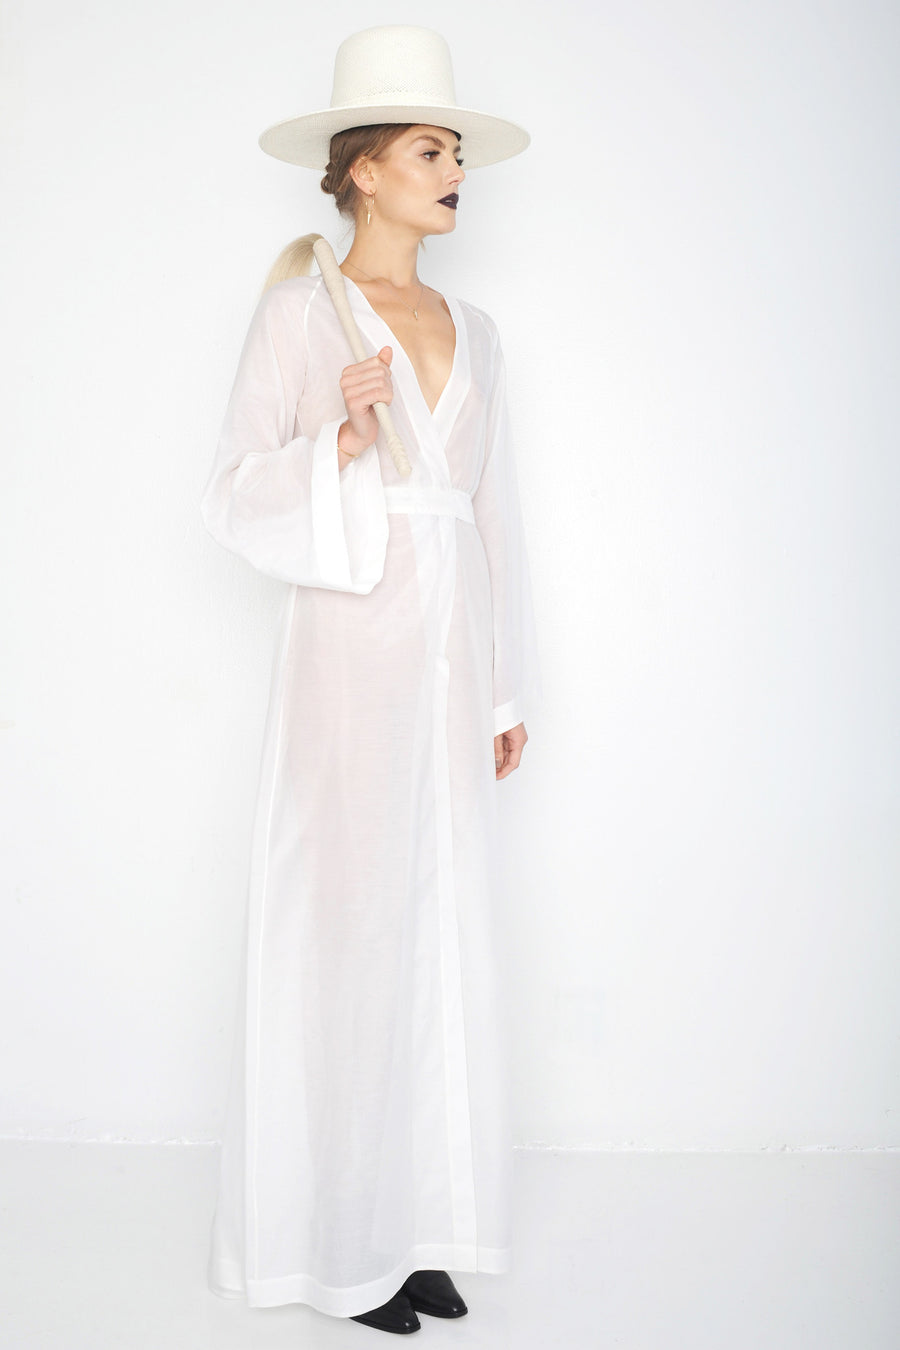 Svetlana IMG Model Wendy Nichol Clothing Designer Handmade in NYC New York City Made to Order Custom Tailoring Made to Measure Bespoke Ready to Wear Fashion Runway Show SS16 Guardians of Light Golden Hour Wrap Dress Silk Sheer Transparent Kimono Deep V Plunge Open cut out Diamond Back Bell Sleeves White Witch Wizard Wedding Bride Magic Magical Summer White Straw Wide Brim Hat